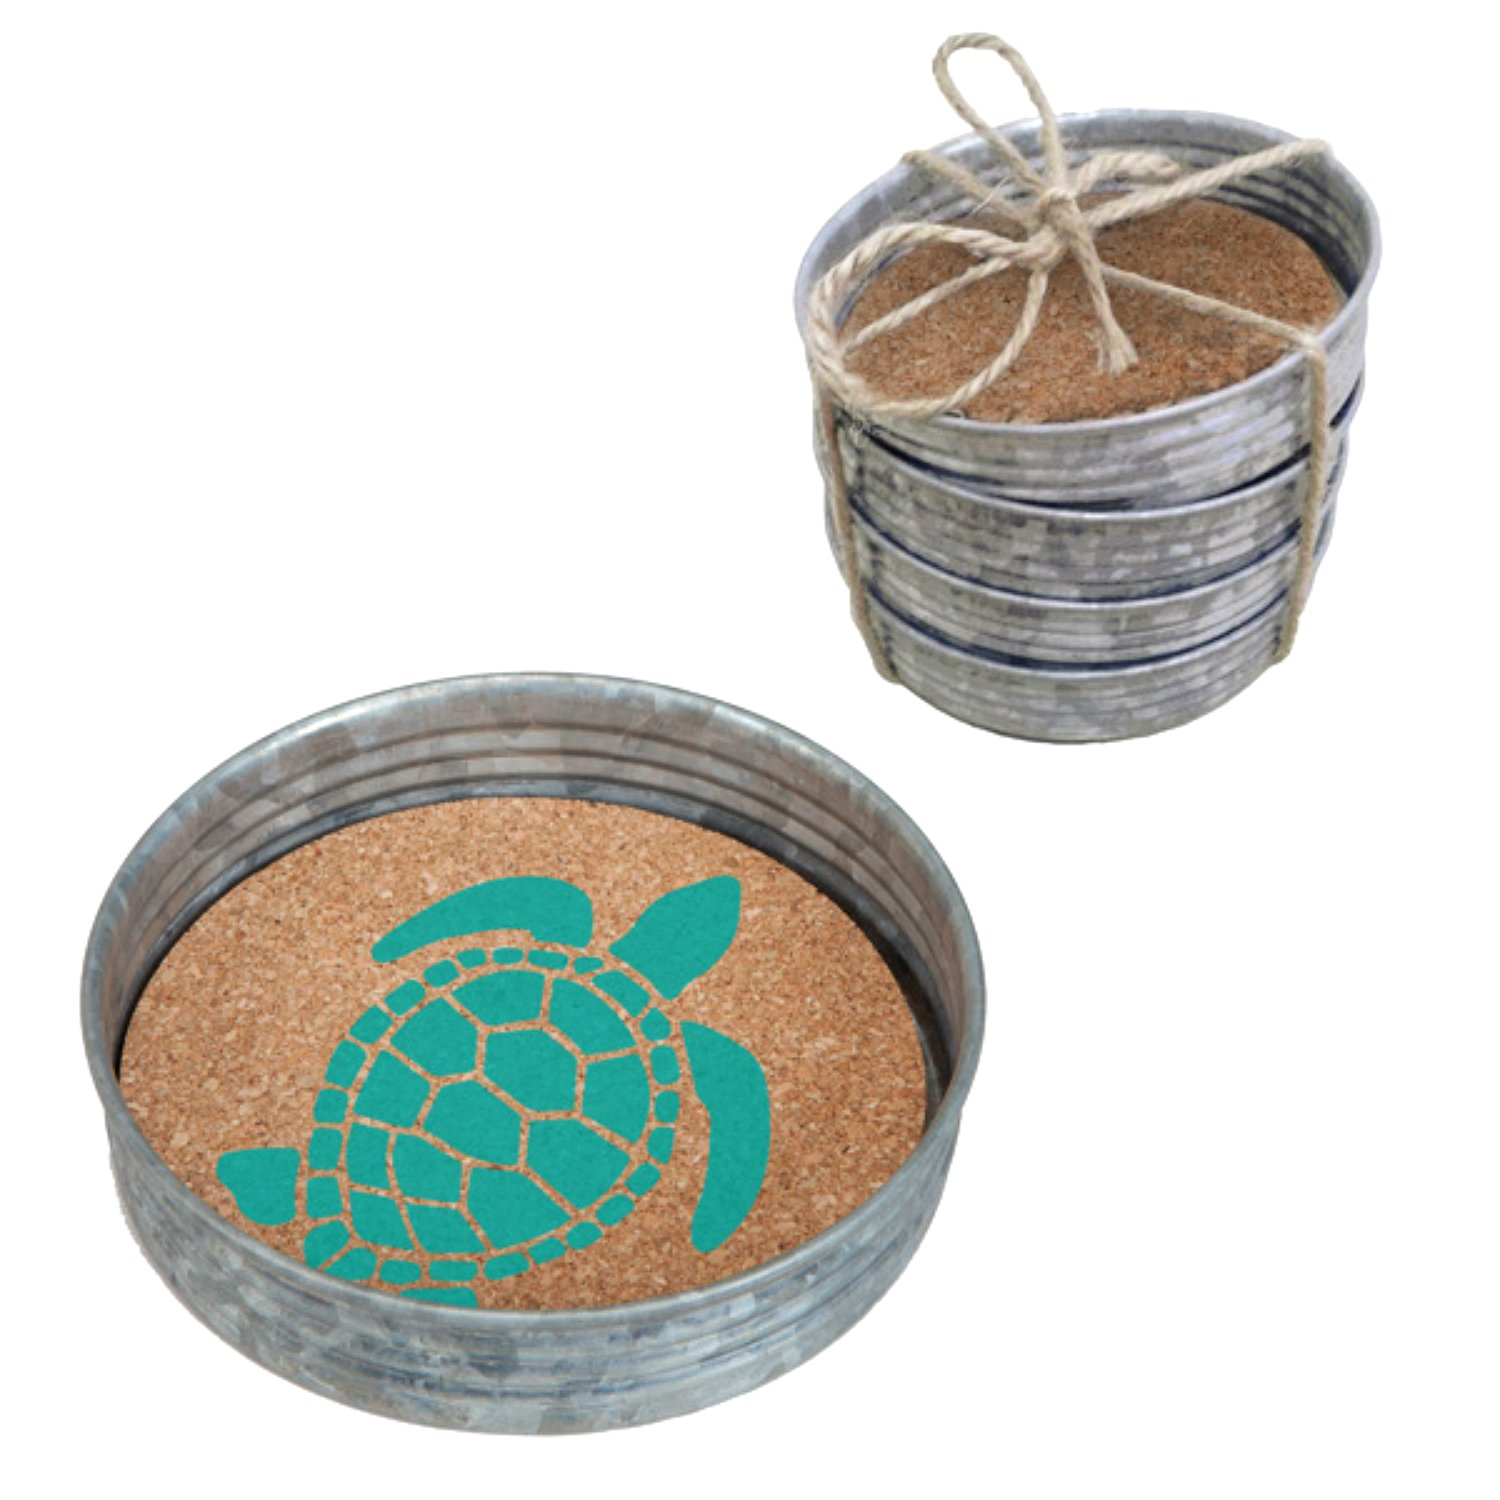 Occasionally Made 4''x4''x1'' Sea Turtle Mason Jar Lid Coaster Stack